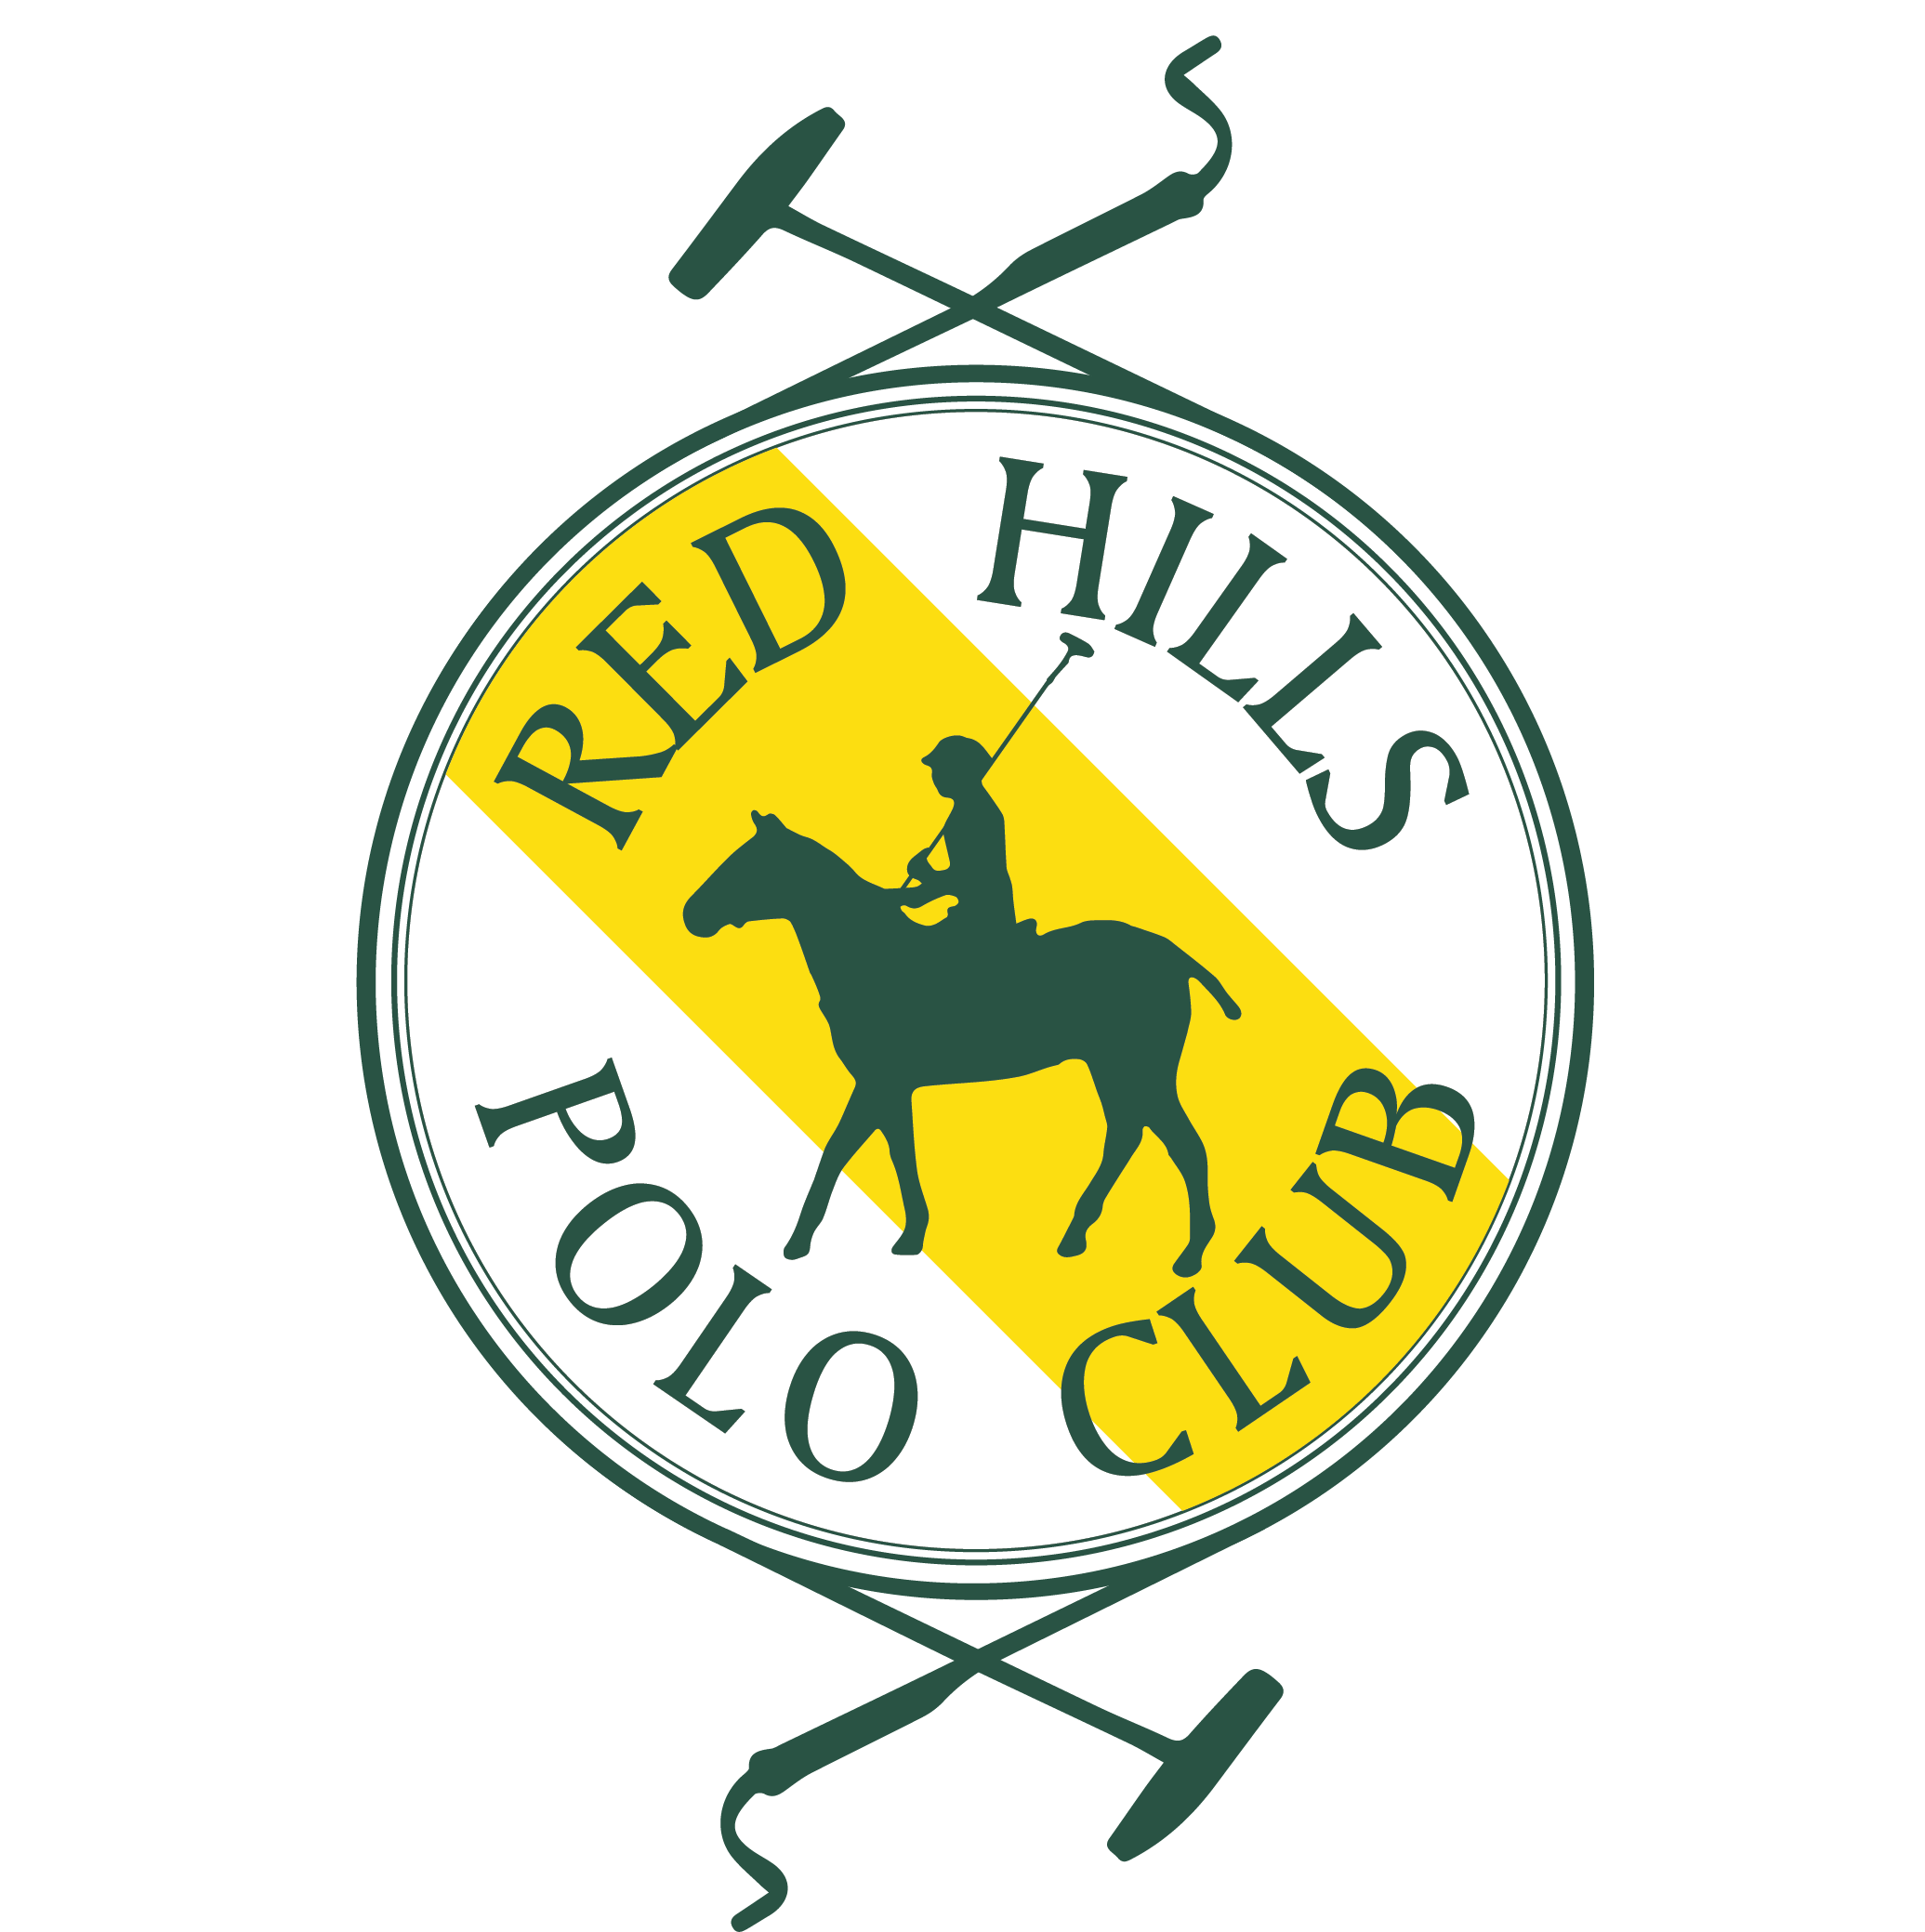 Red Hills Polo Club